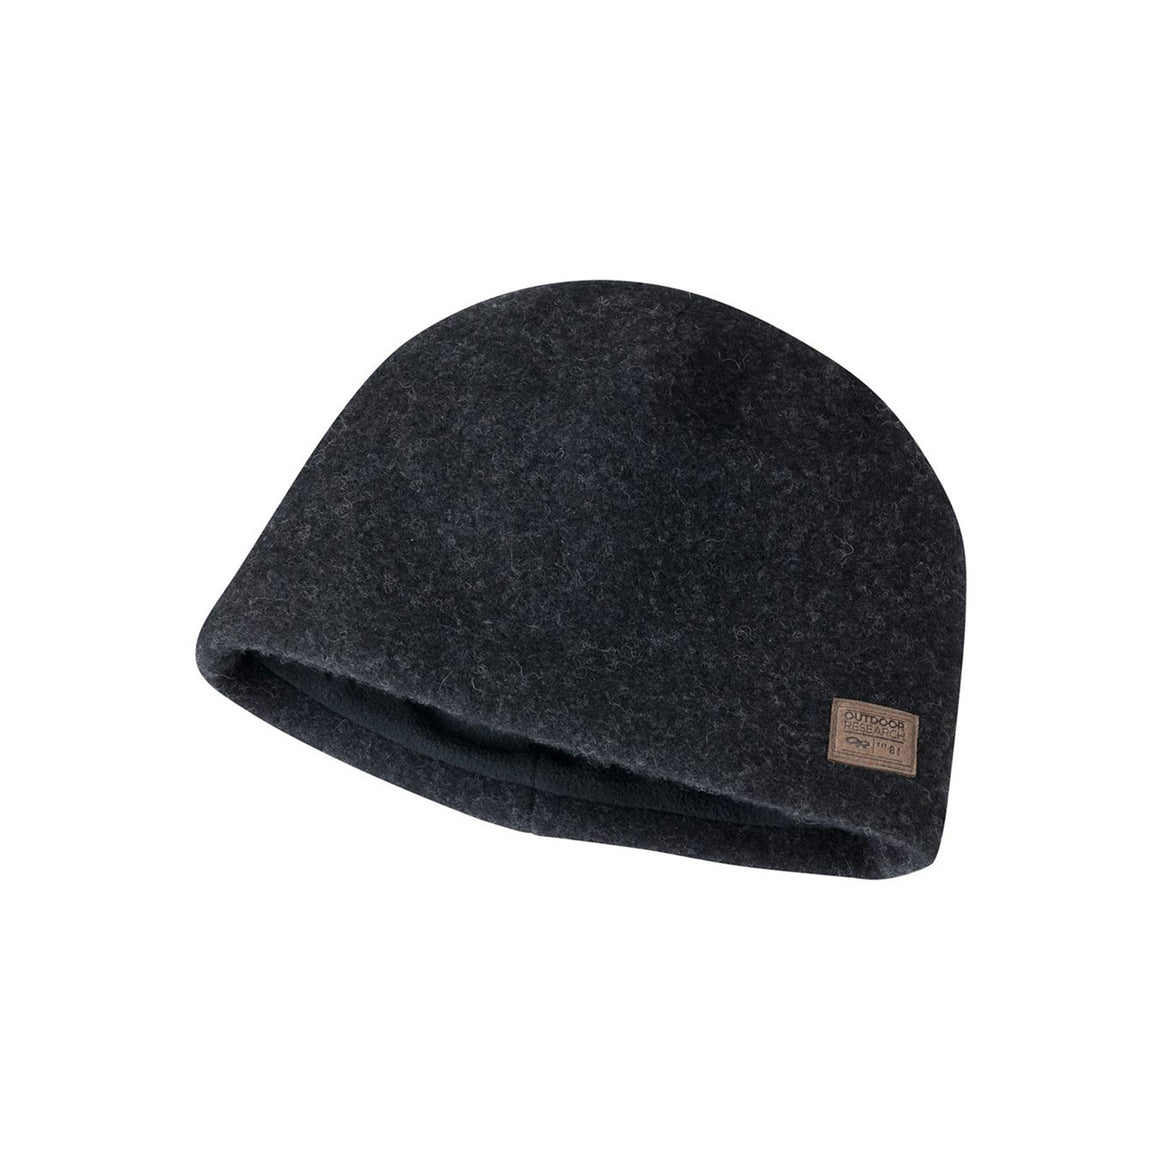 Outdoor Research Whiskey Peak Beanie - Unisex